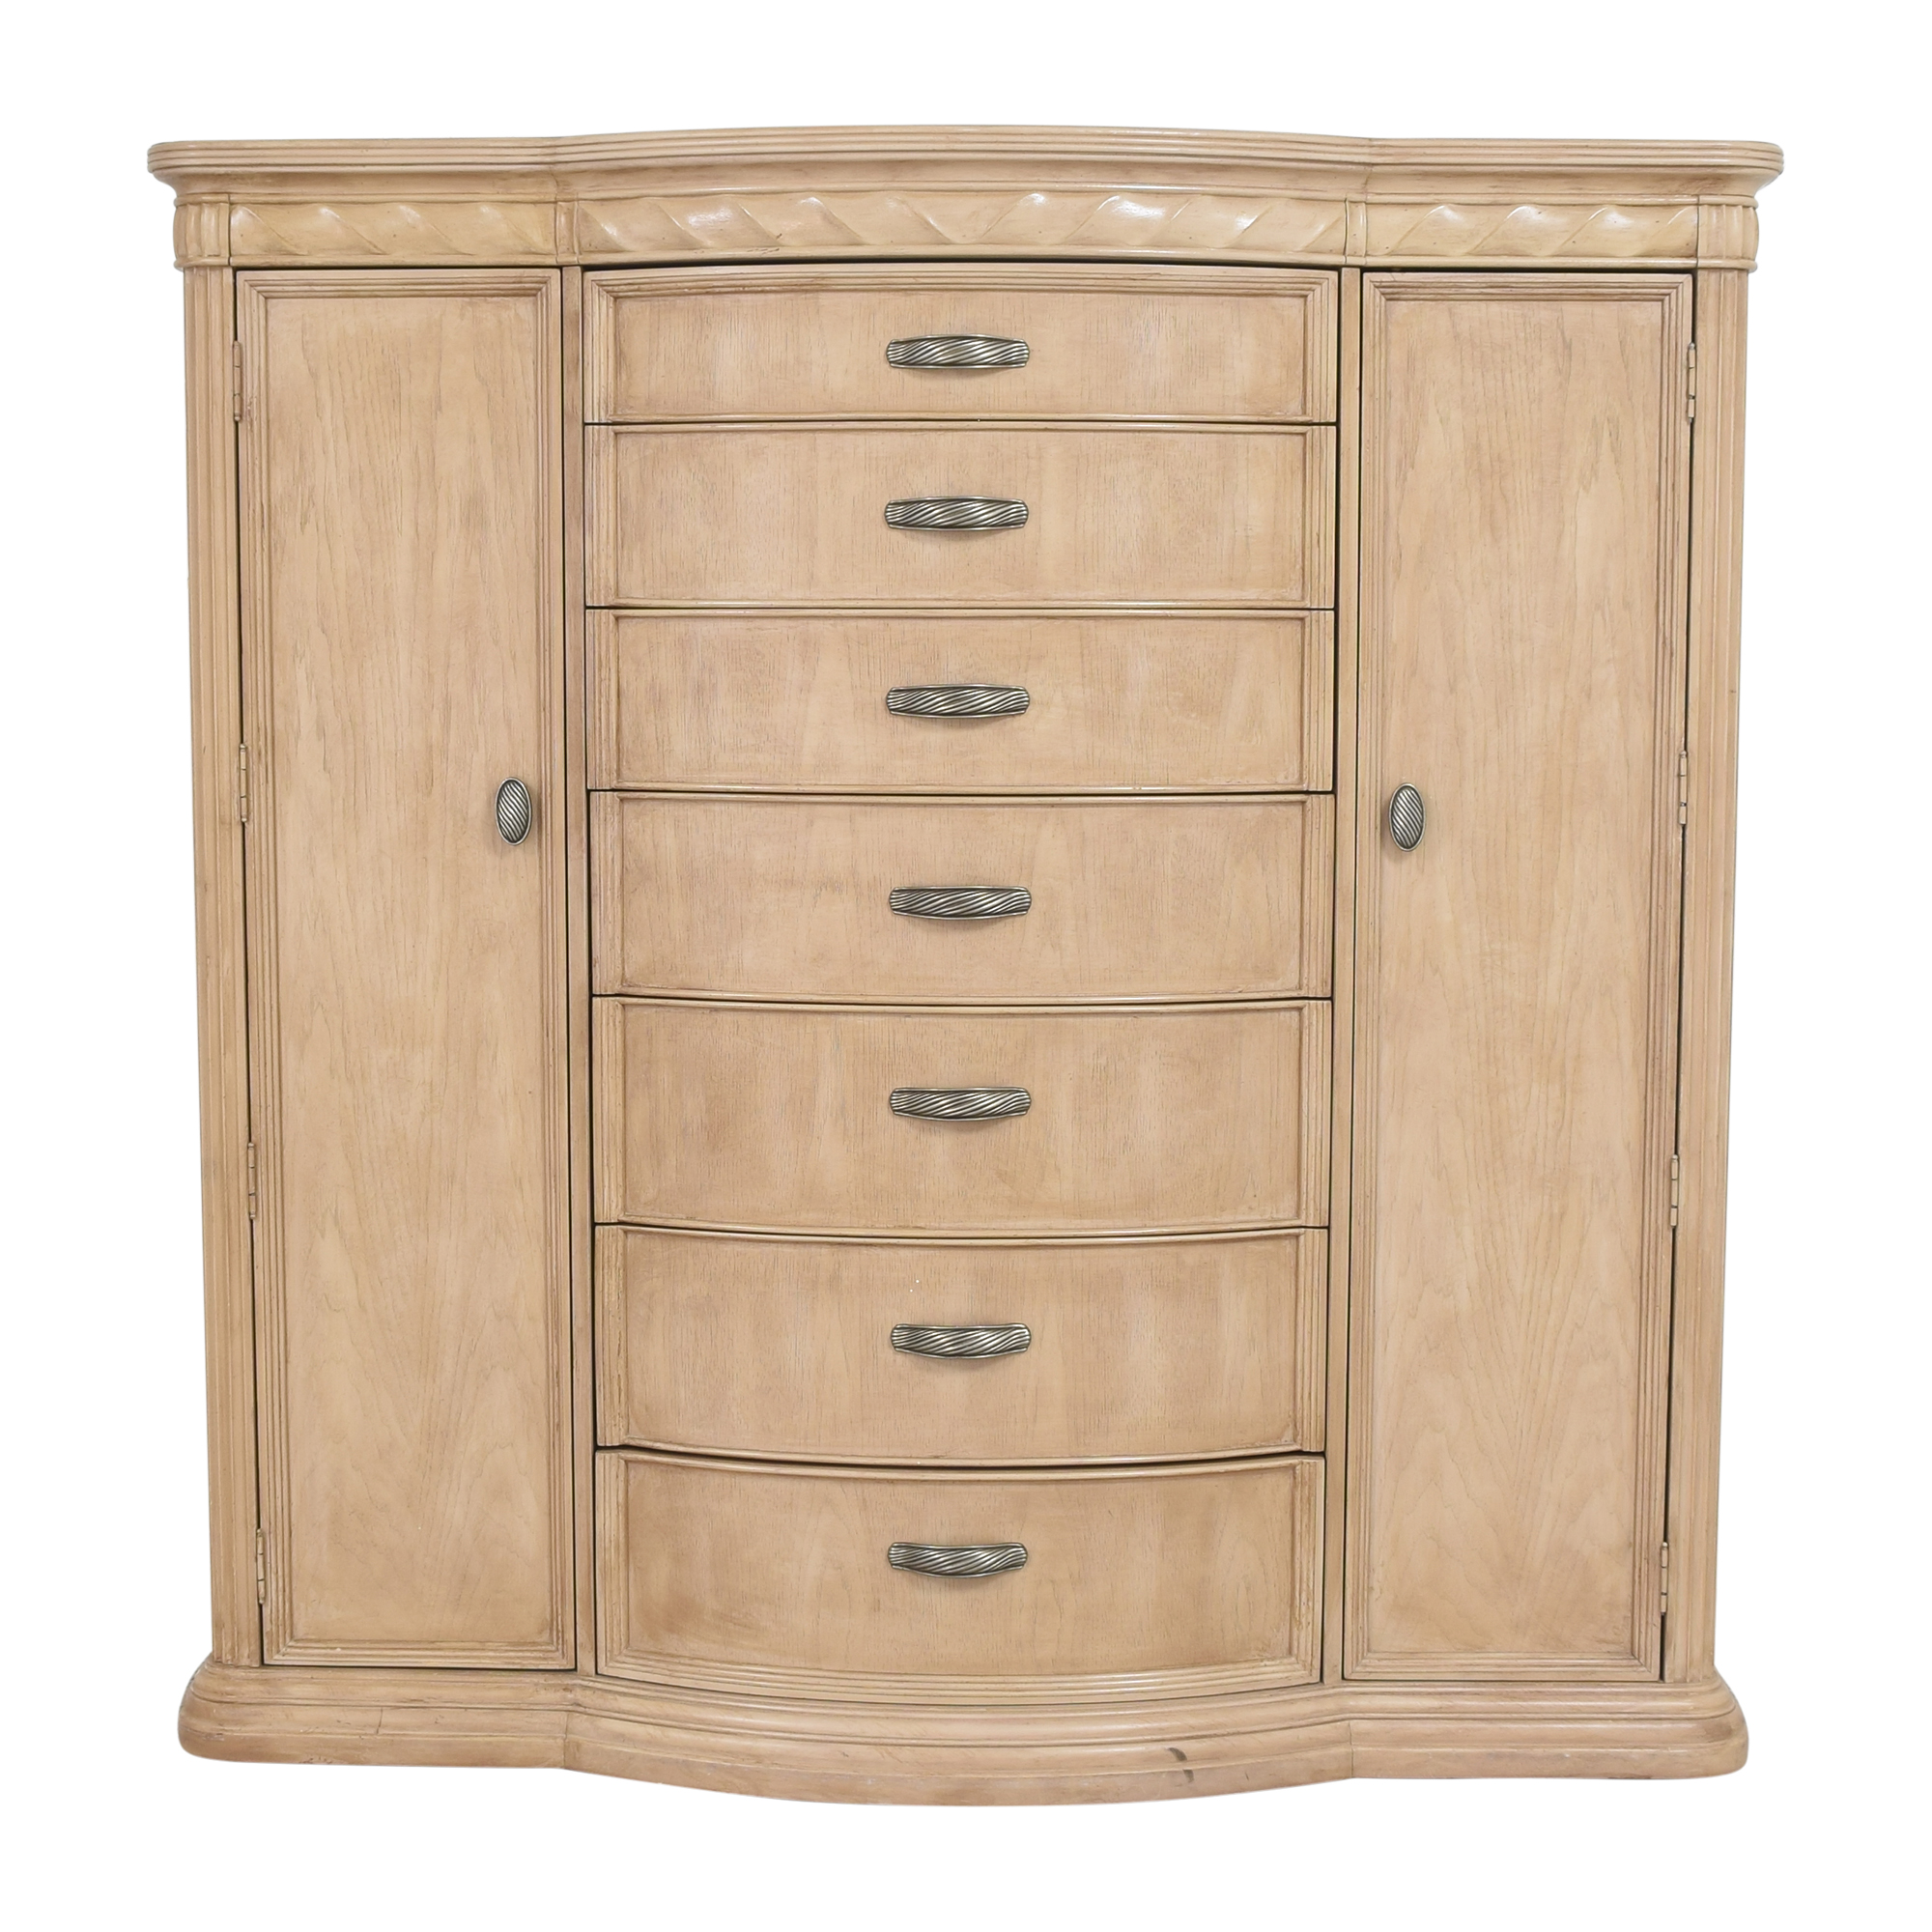 Bernhardt Bernhardt Large Chest of Drawers